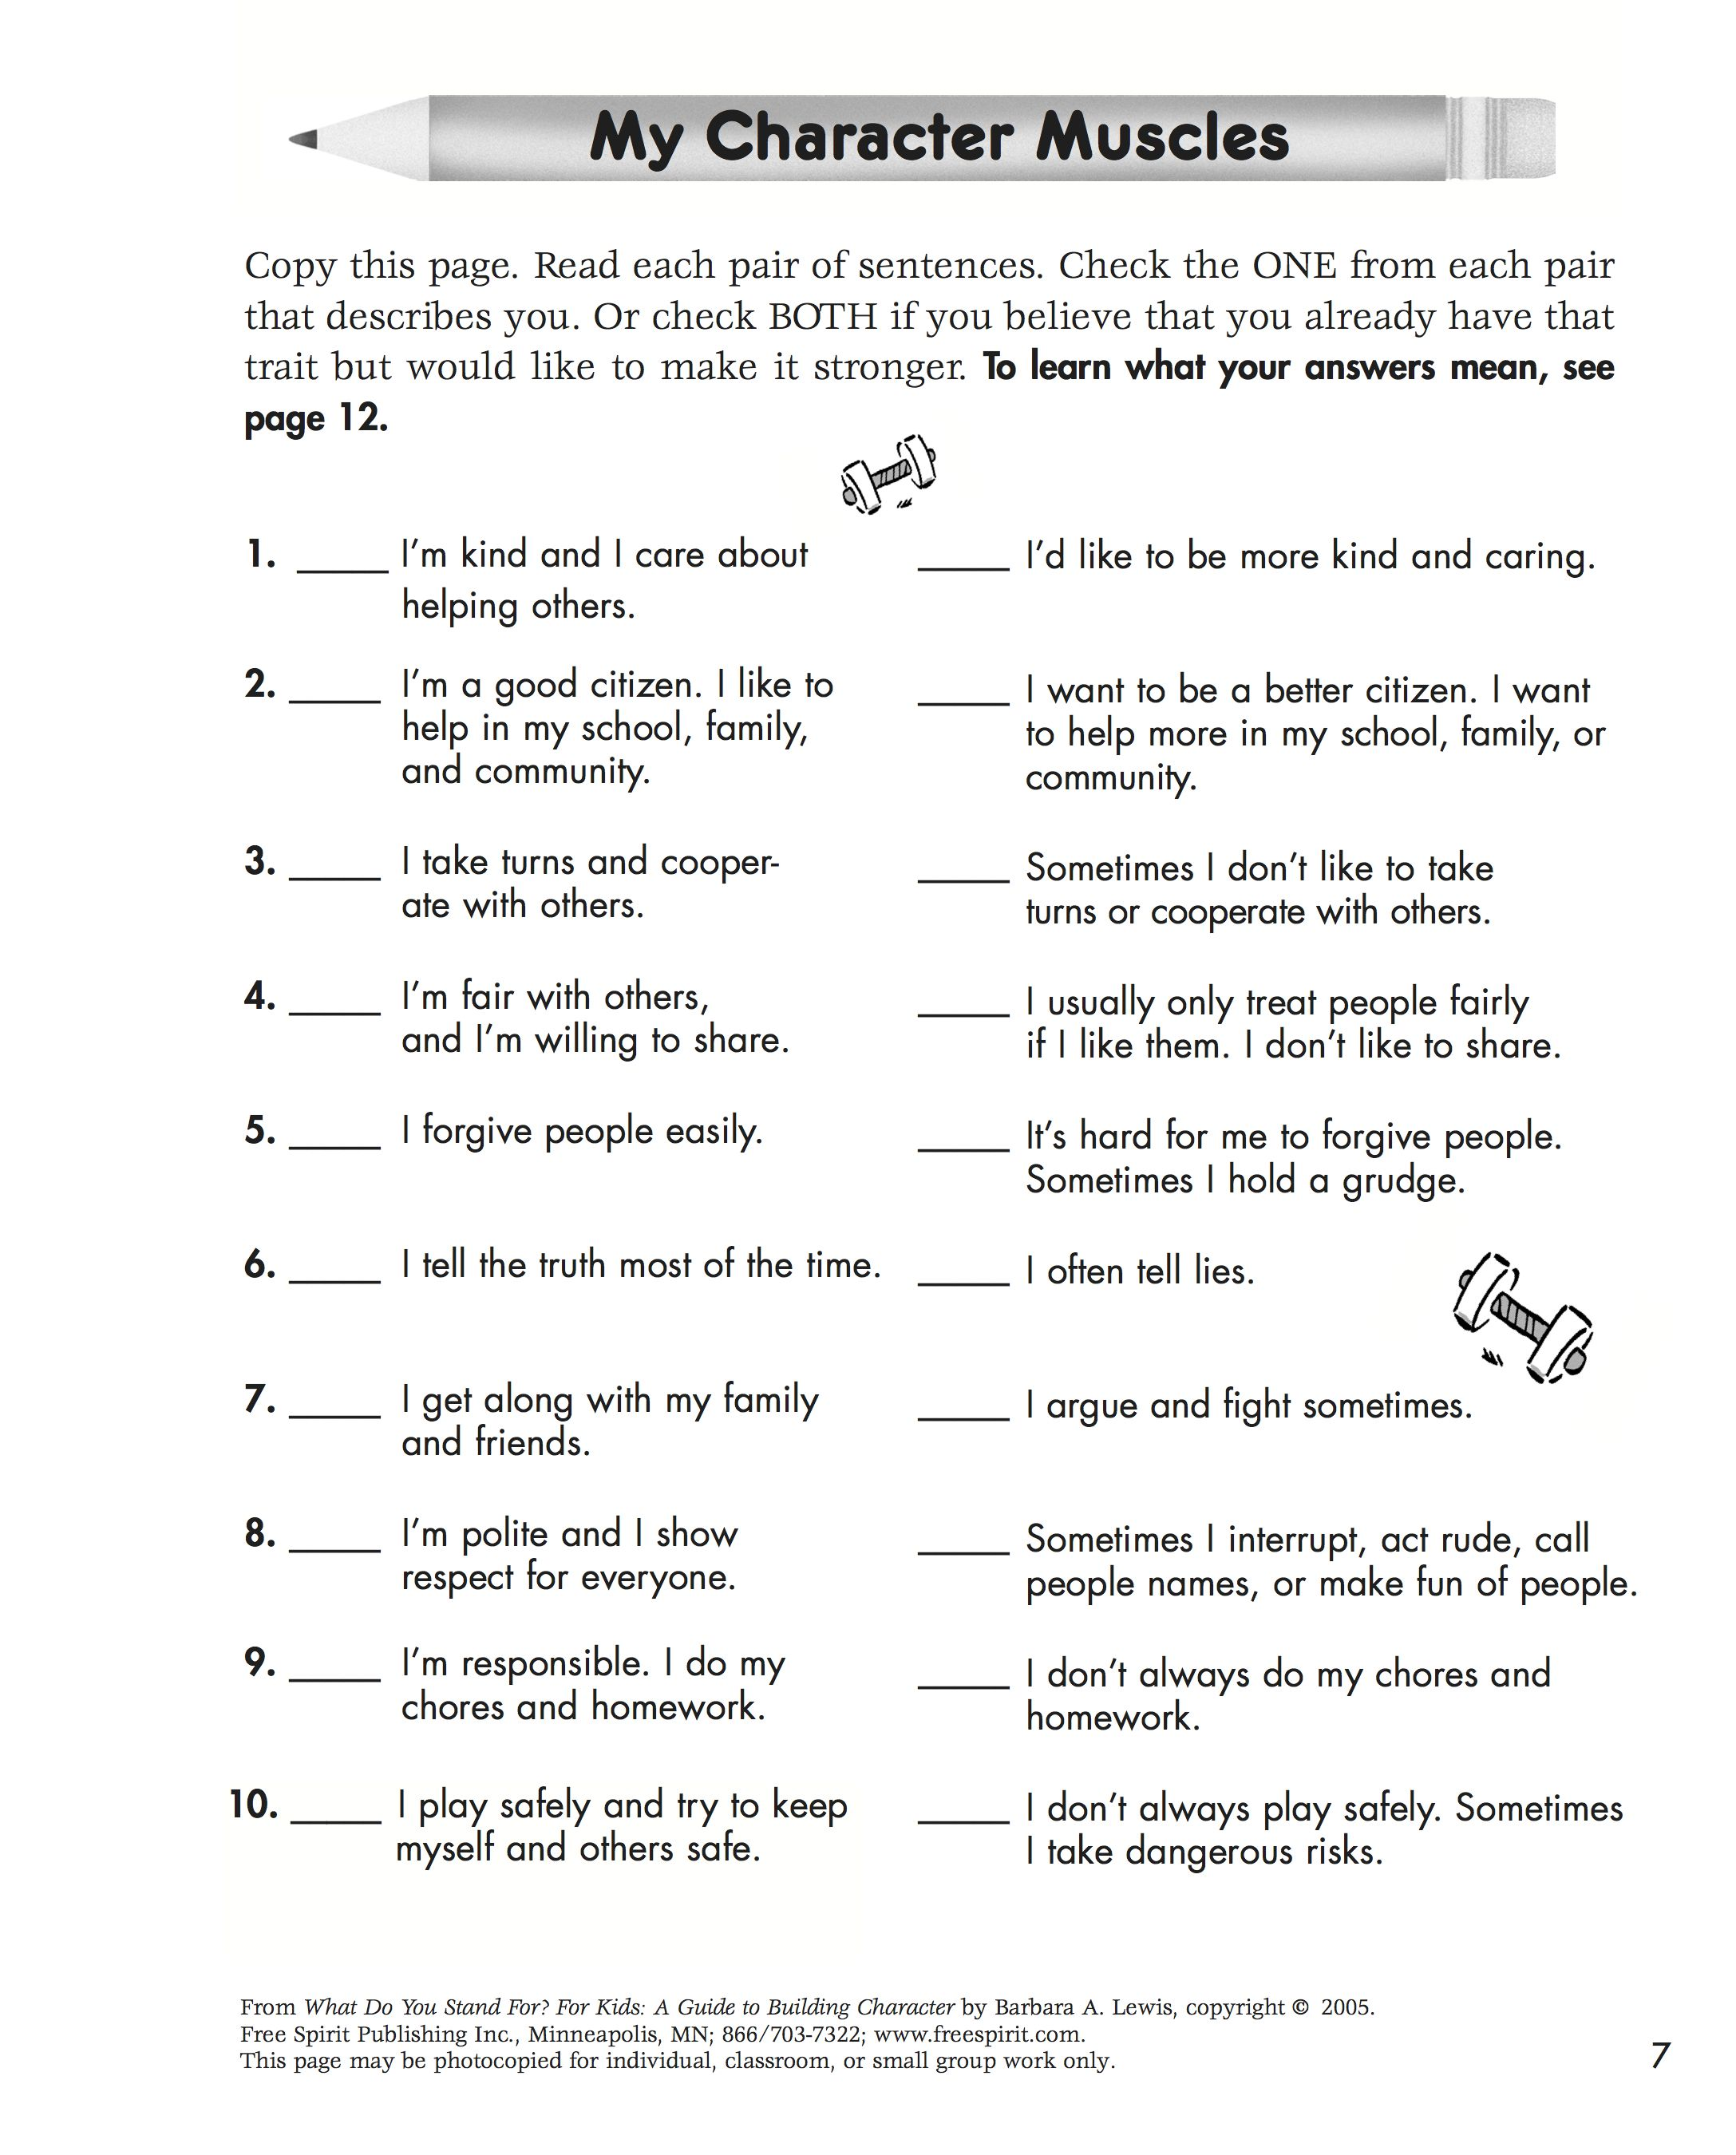 Free Printable Character Education Quiz To Help Kids Learn Which Character  Traits They Have Room To  Free Printable Quiz